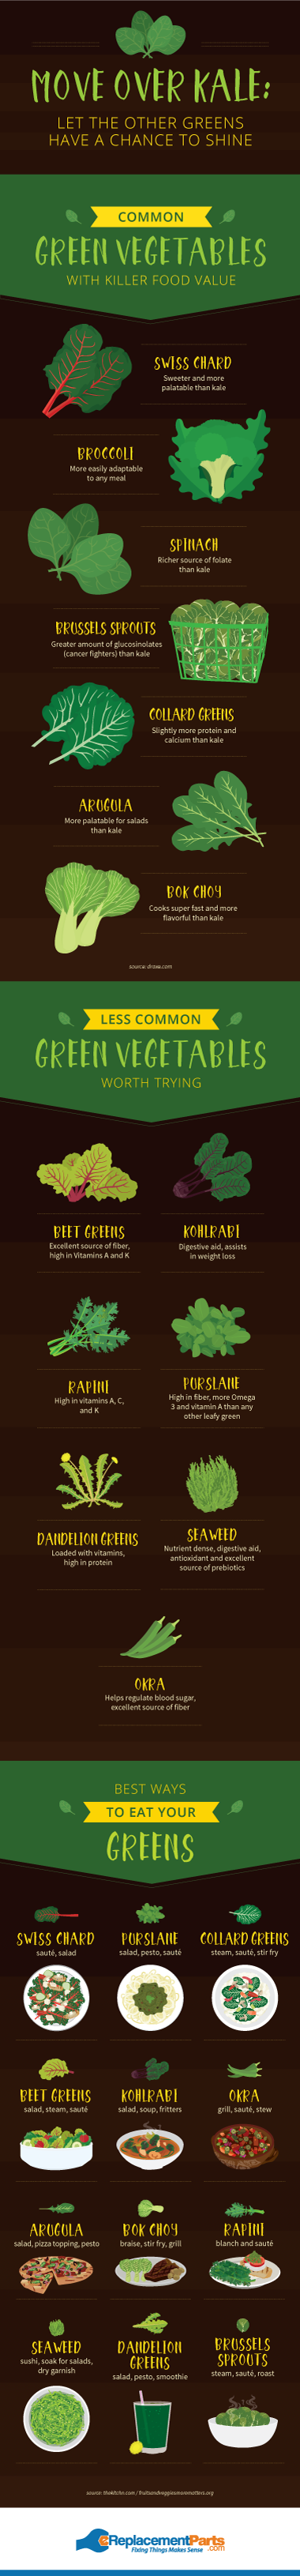 Try These Superfood Greens